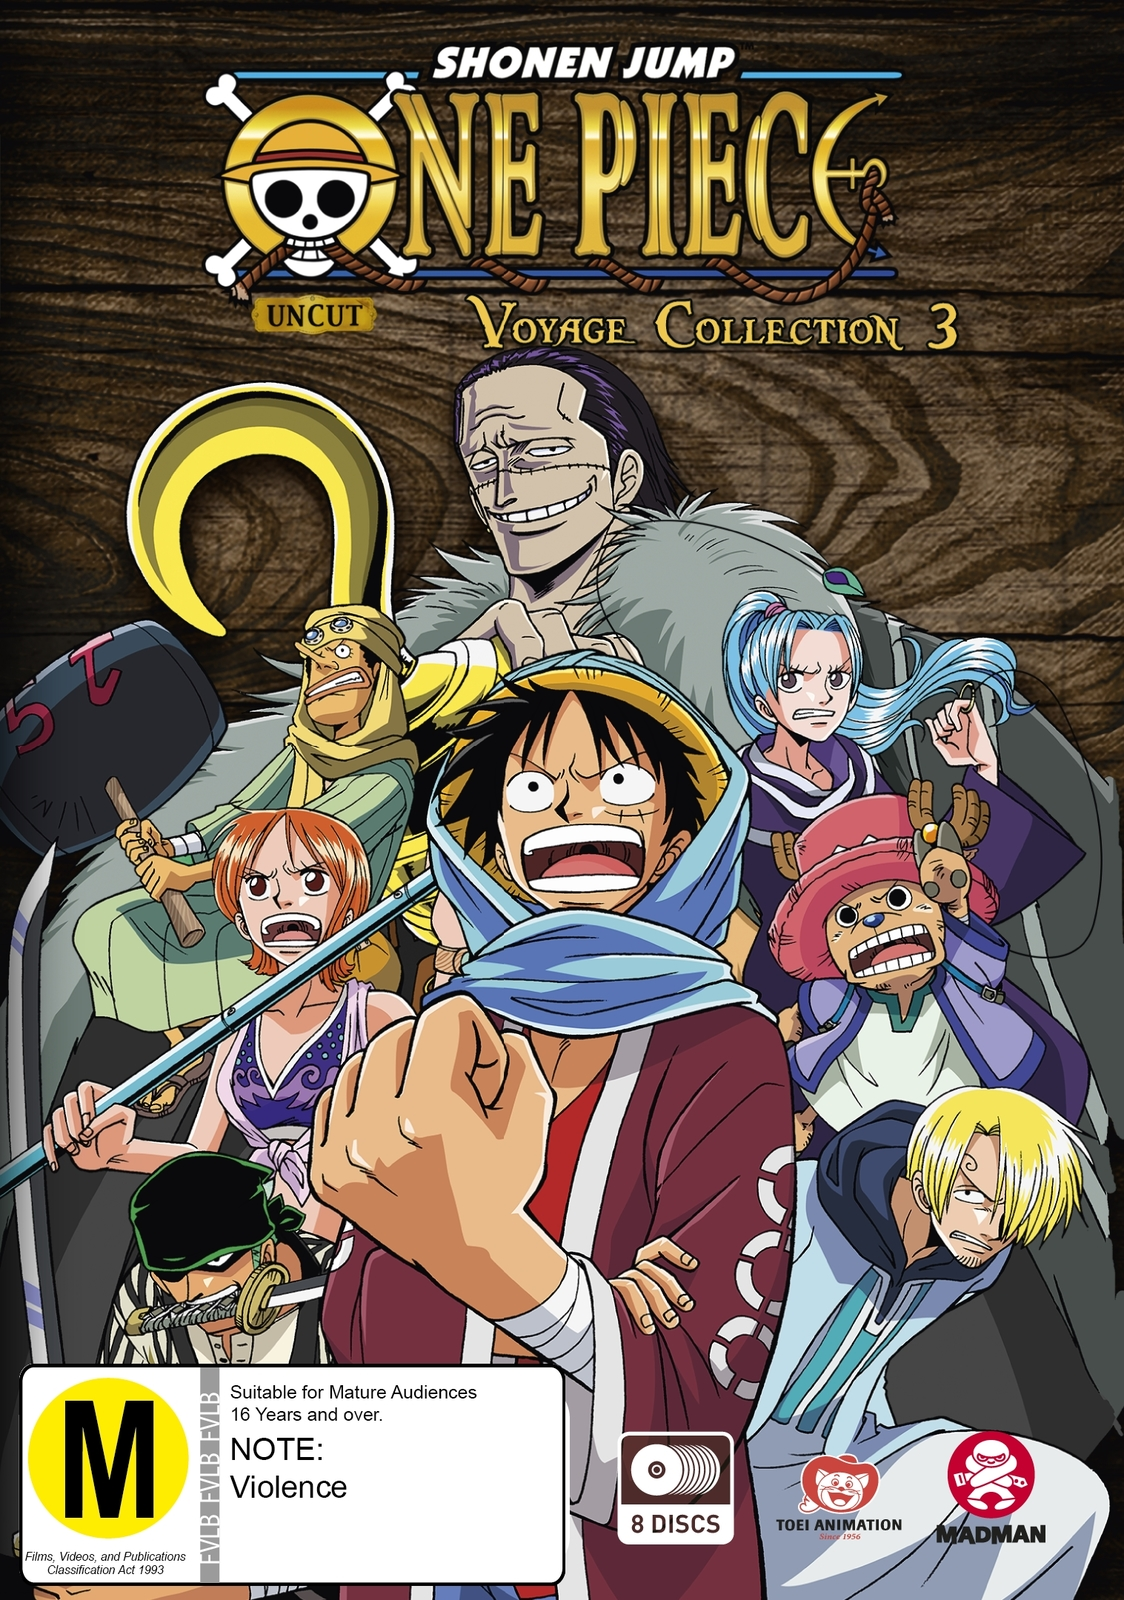 One Piece - Voyage Collection 3 (Episodes 104-156) on DVD image